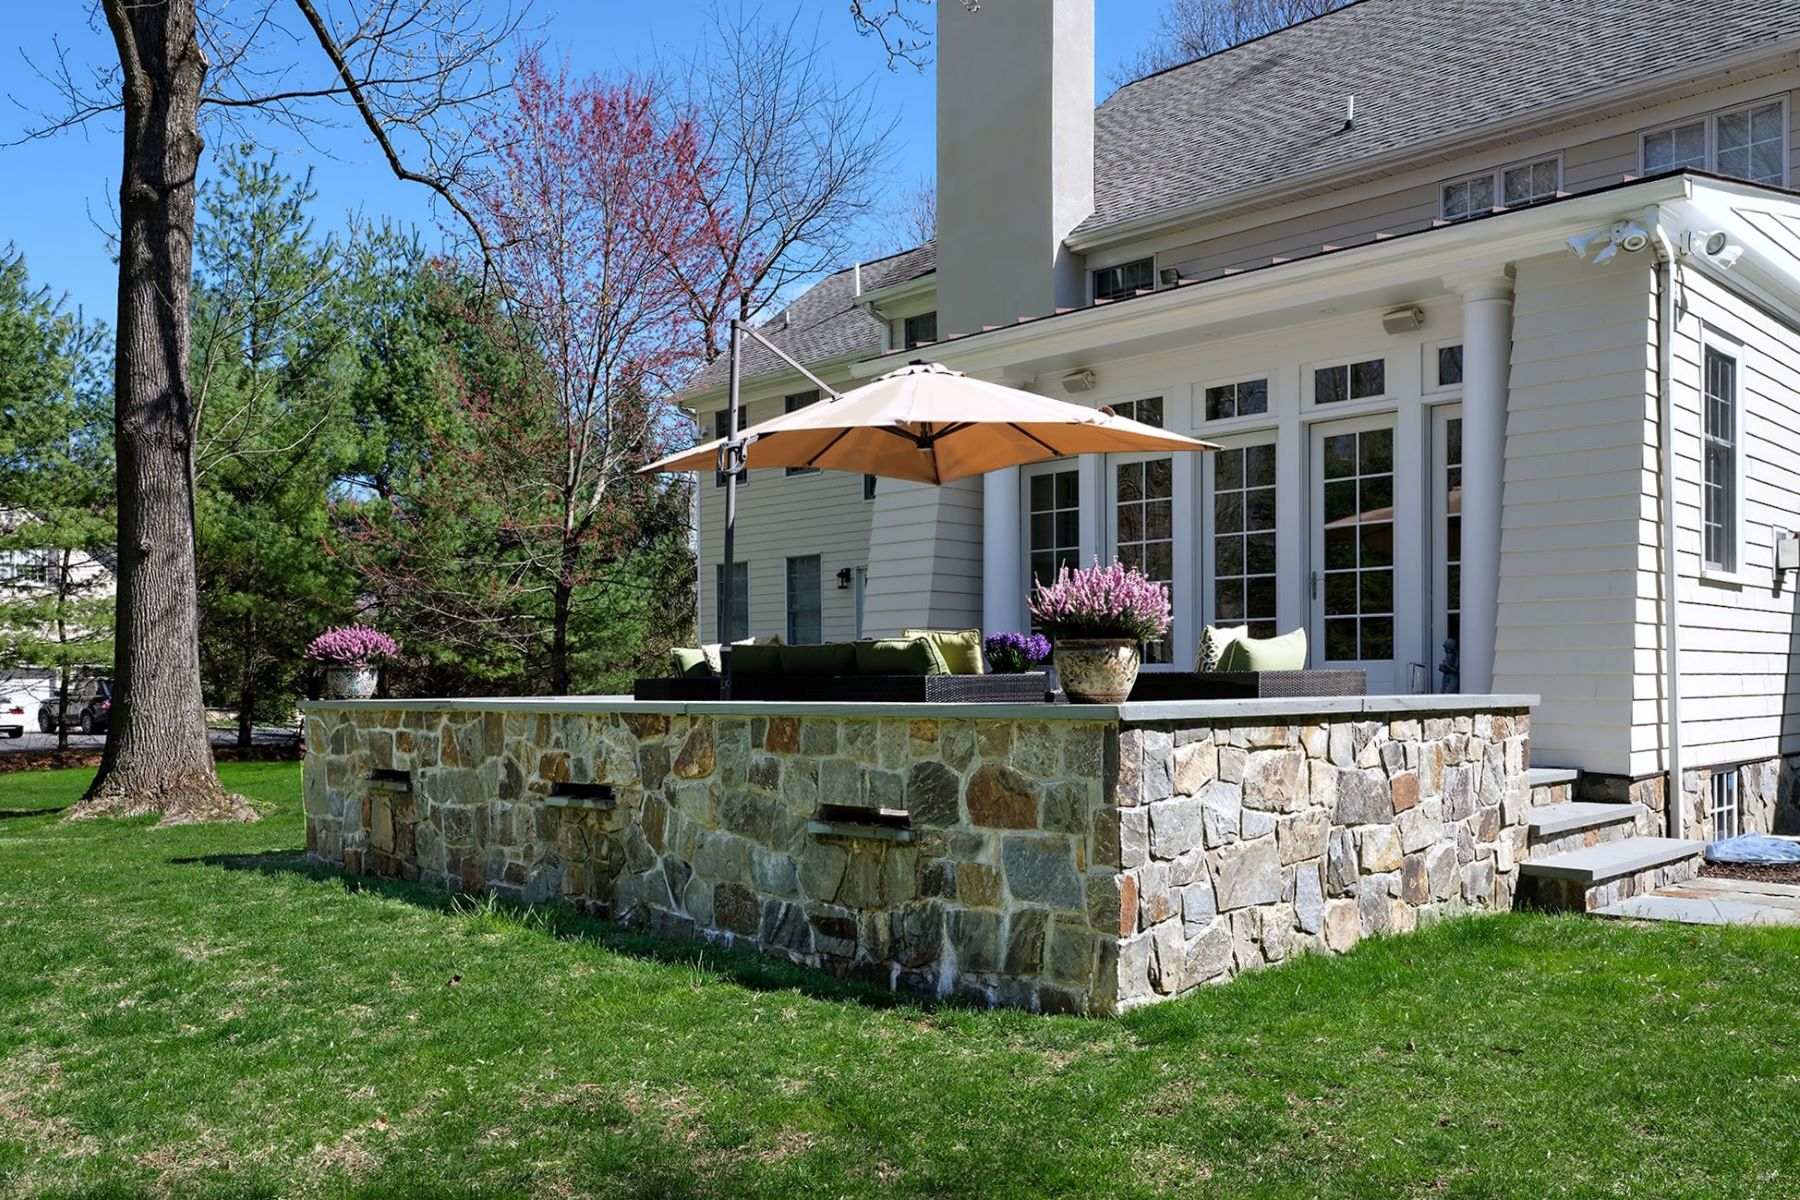 Additional photo for property listing at A True Beauty With Many Recent Improvements 656 Cherry Hill Road, Princeton, New Jersey 08540 United States